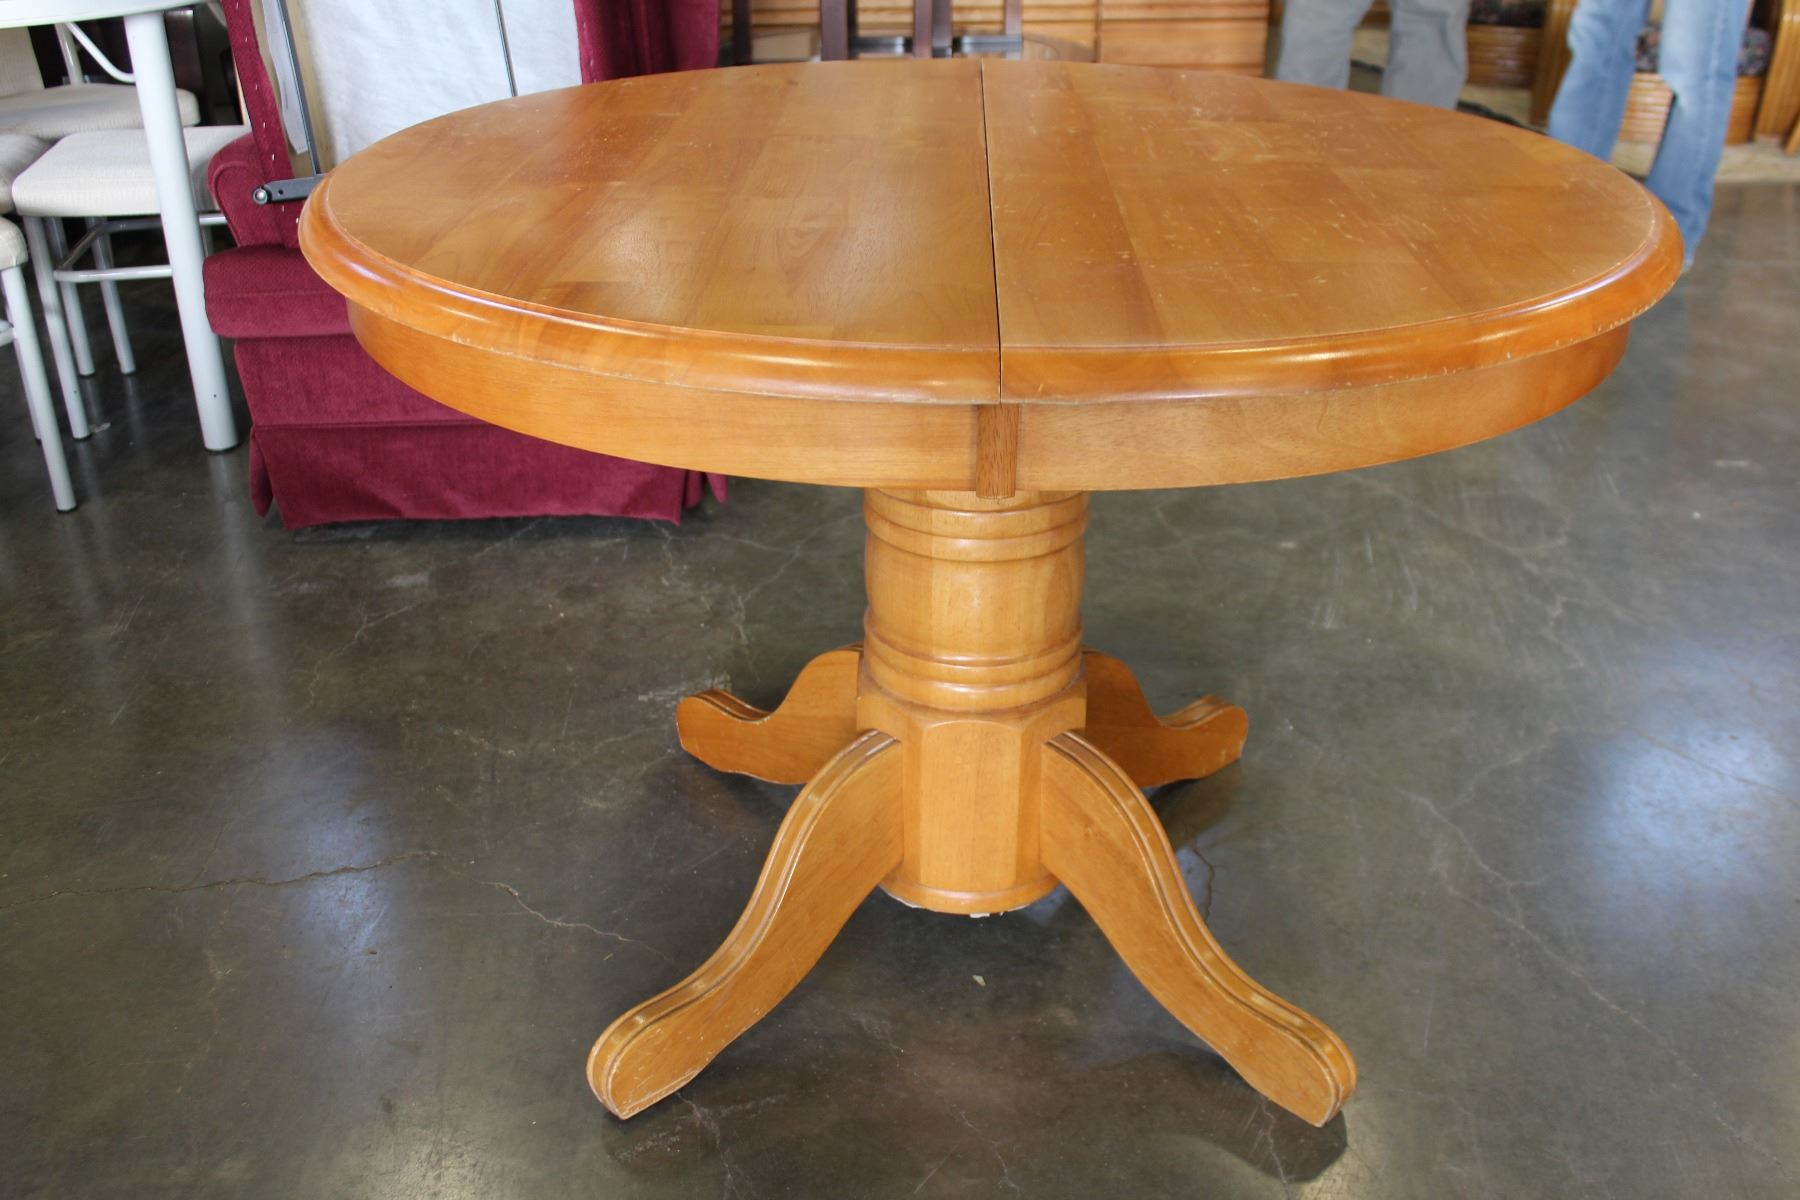 ... Image 2 : ROUND MAPLE DINING TABLE WITH JACK KNIFE LEAF AND FOUR OAK  ROLLING CHAIRS ...